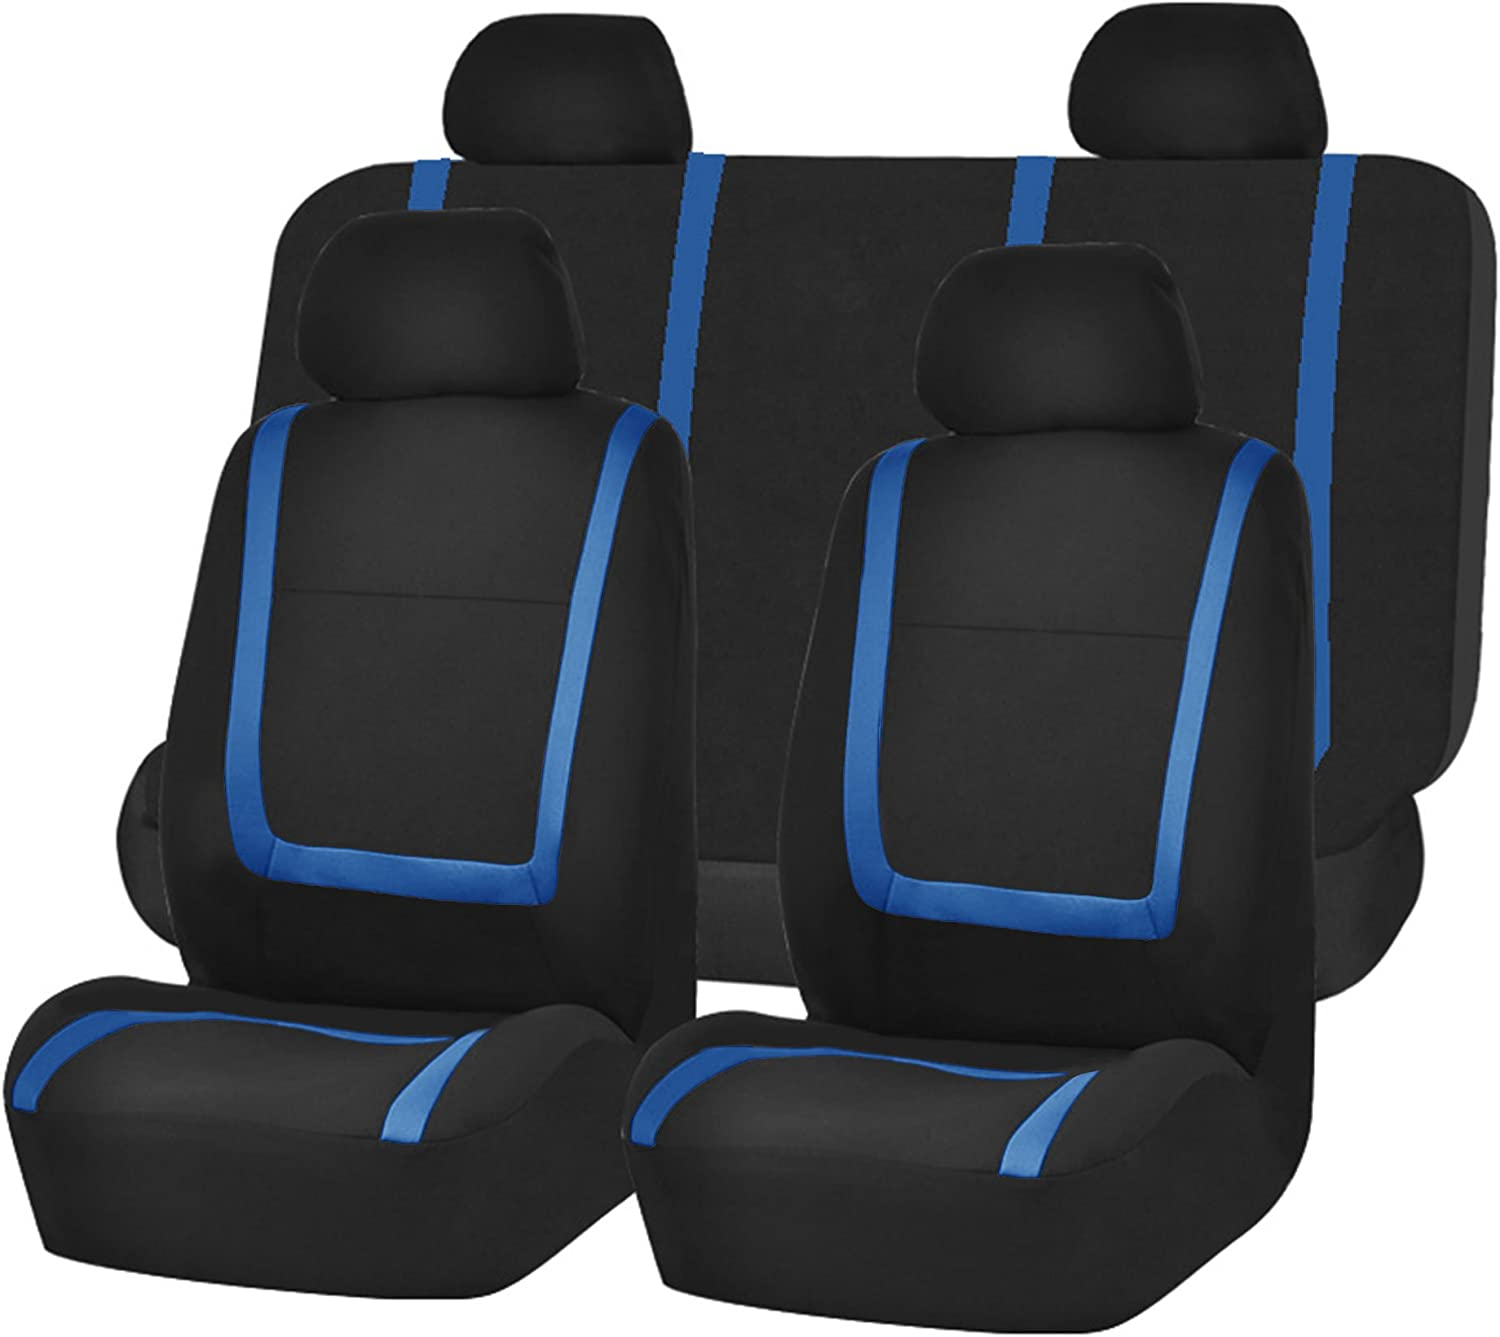 New Blue /& Black Polyester Soft Car Seat Covers w//Headrest Covers For Kia Qty 8